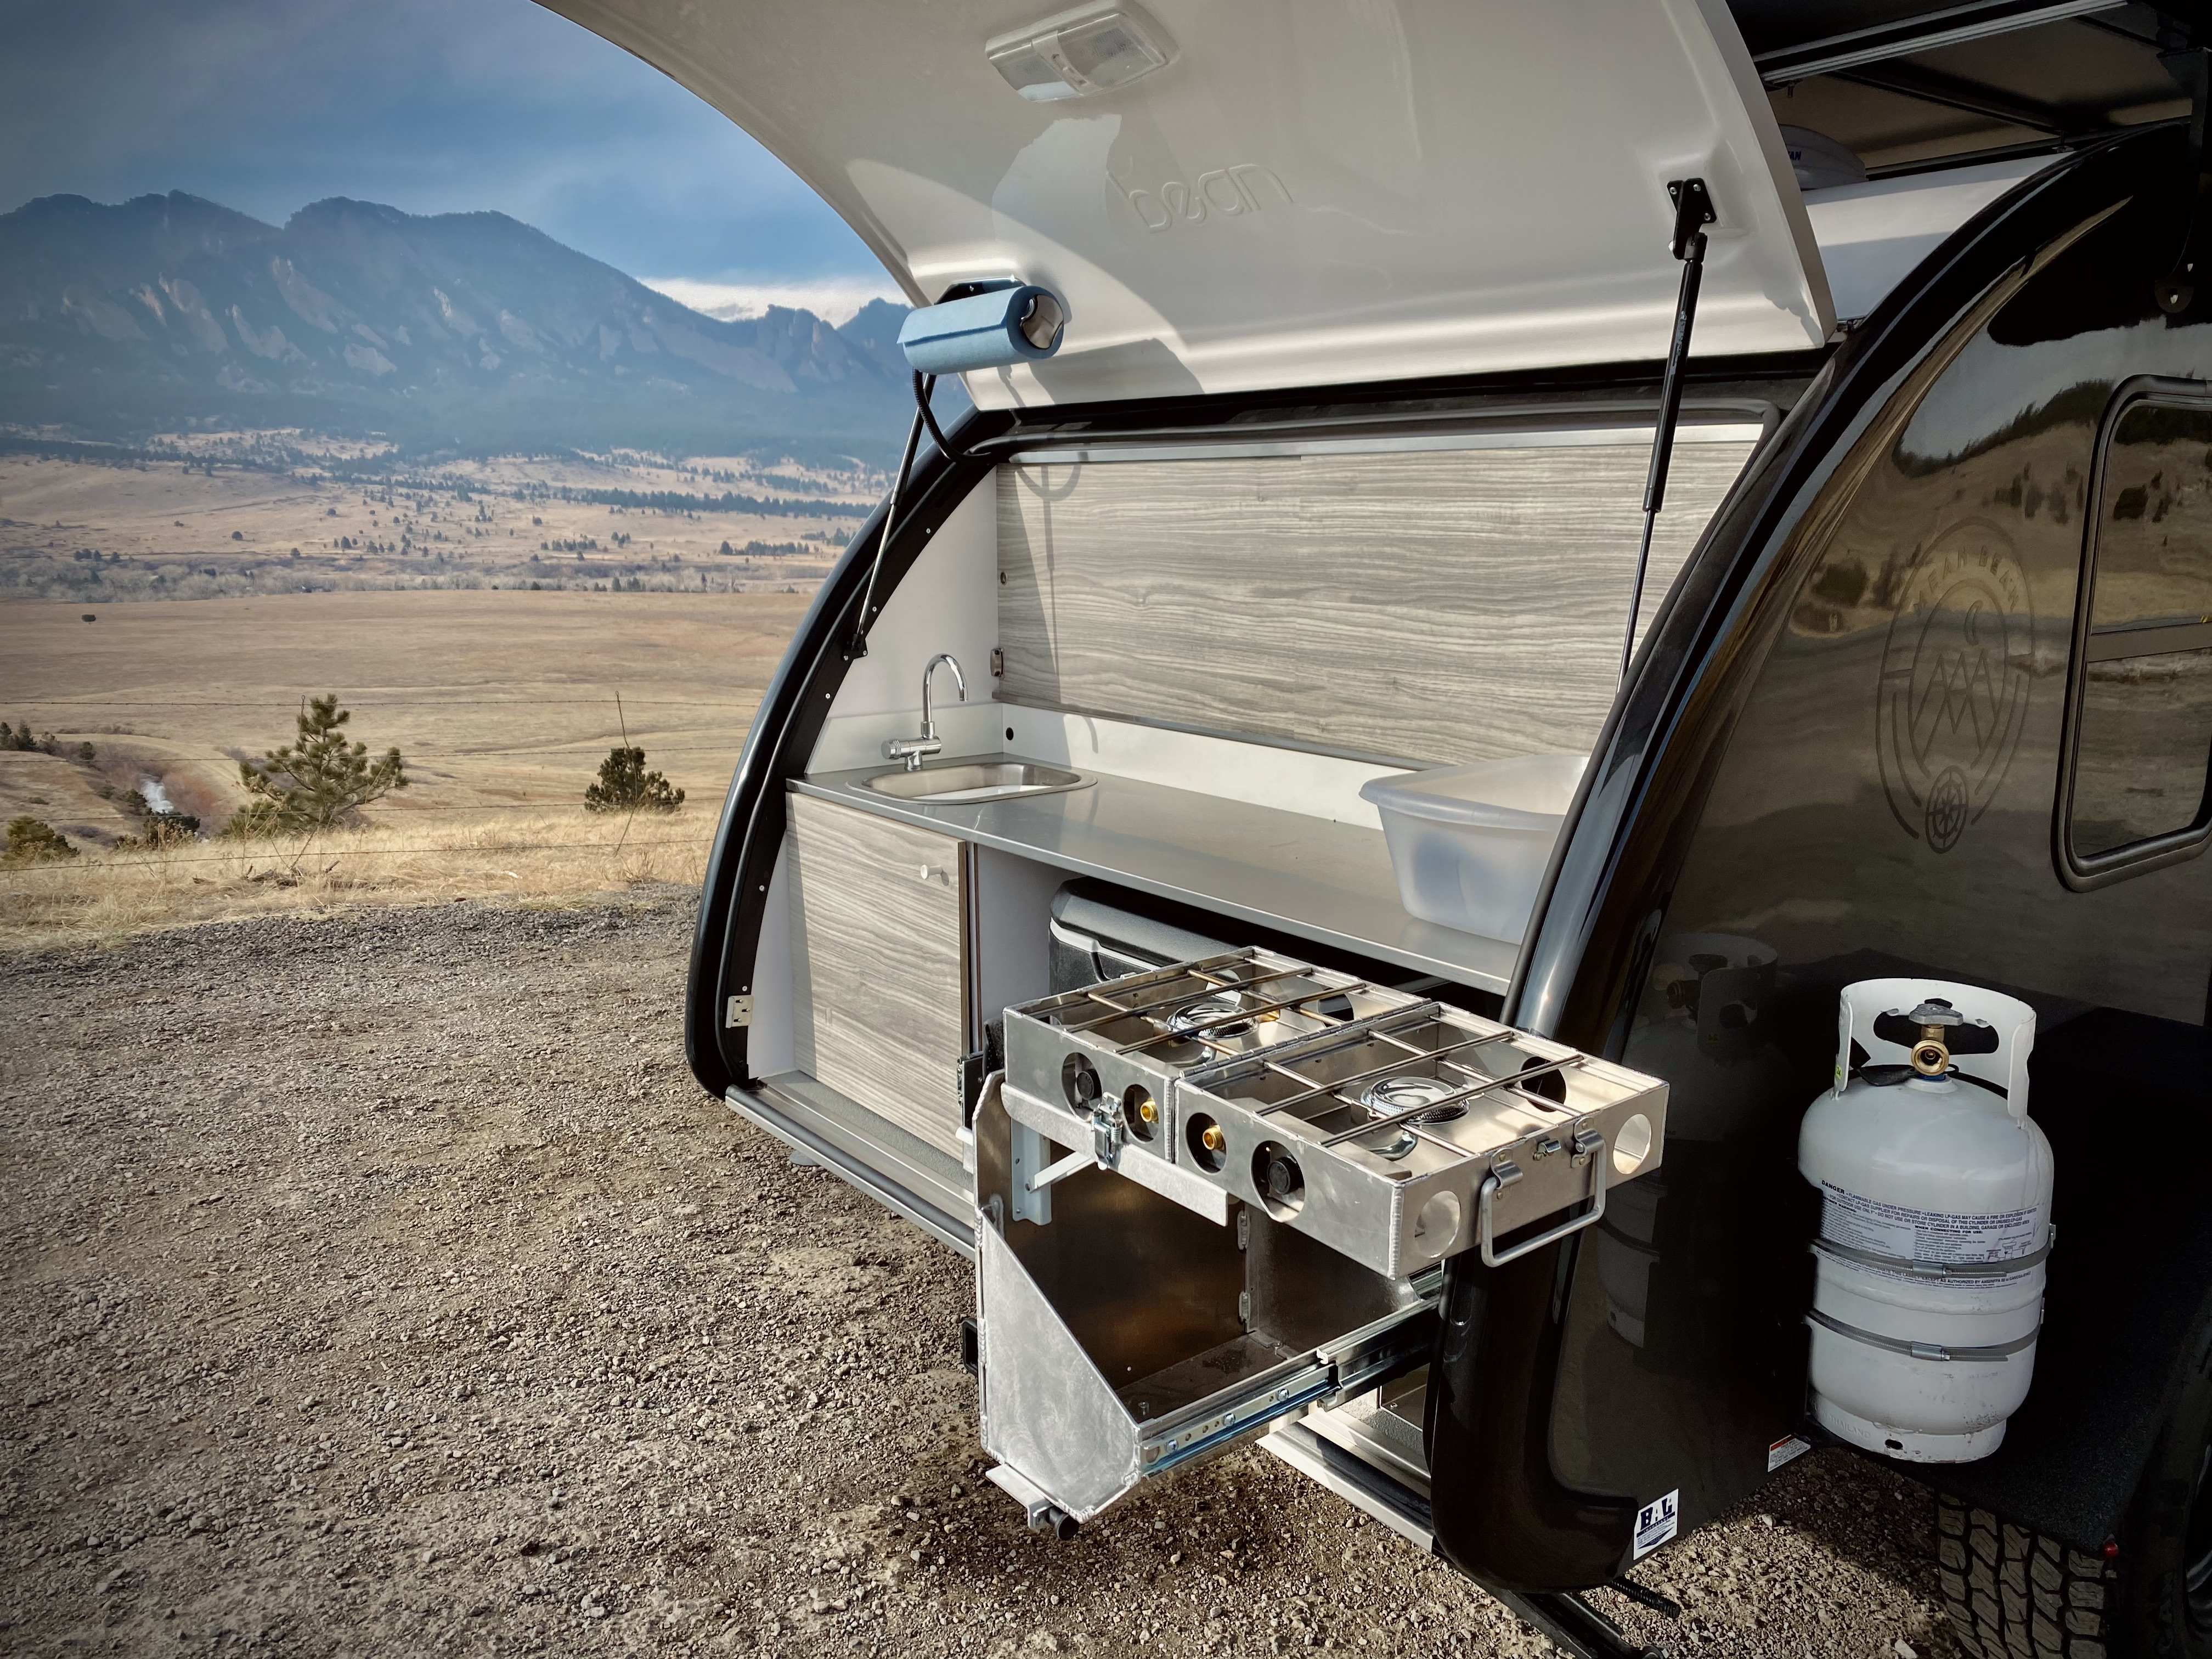 Cooking with Mobi the Mean Bean is a joy.  Stainless steel counter, Camp Partner stove, stainless steel sink with automatic faucet.  And spacious!. Bean Teardrop Trailer Mean Bean 2021